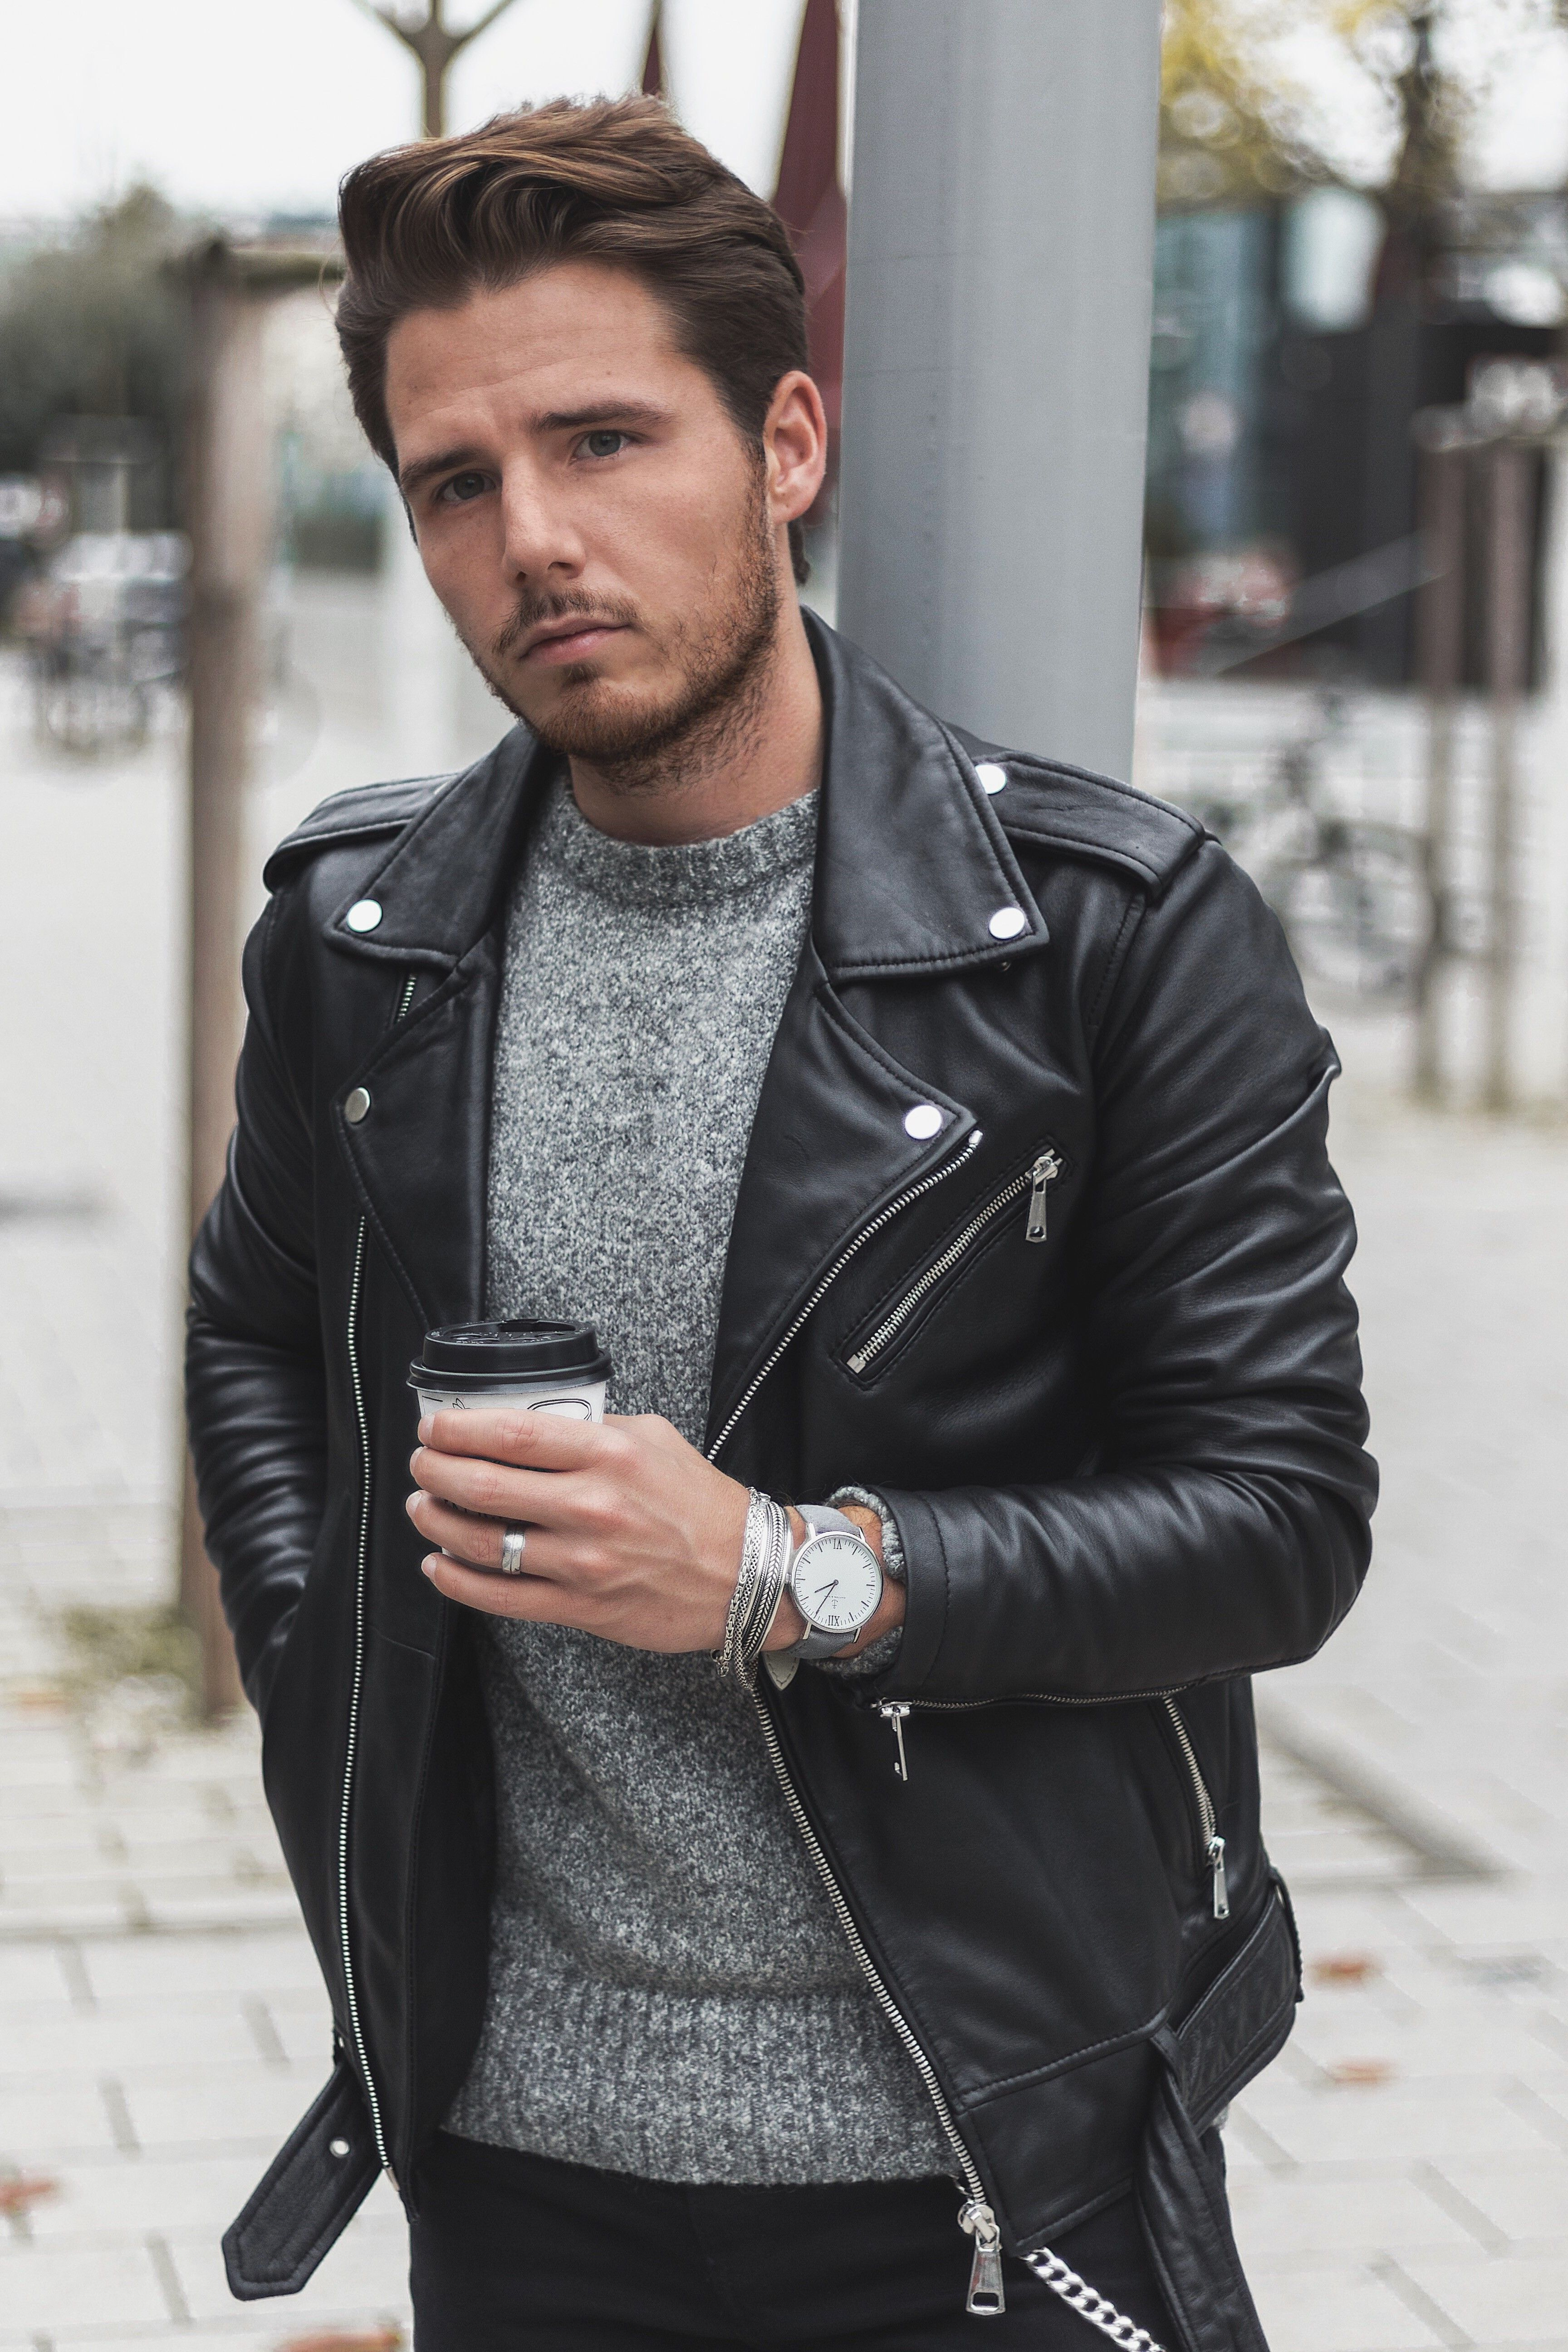 Watch For Him Outfit Inspiration Black Leather Jacket Grey Knit Gift Ide Leather Jacket Outfit Men Black Leather Jacket Men Black Leather Jacket Outfit